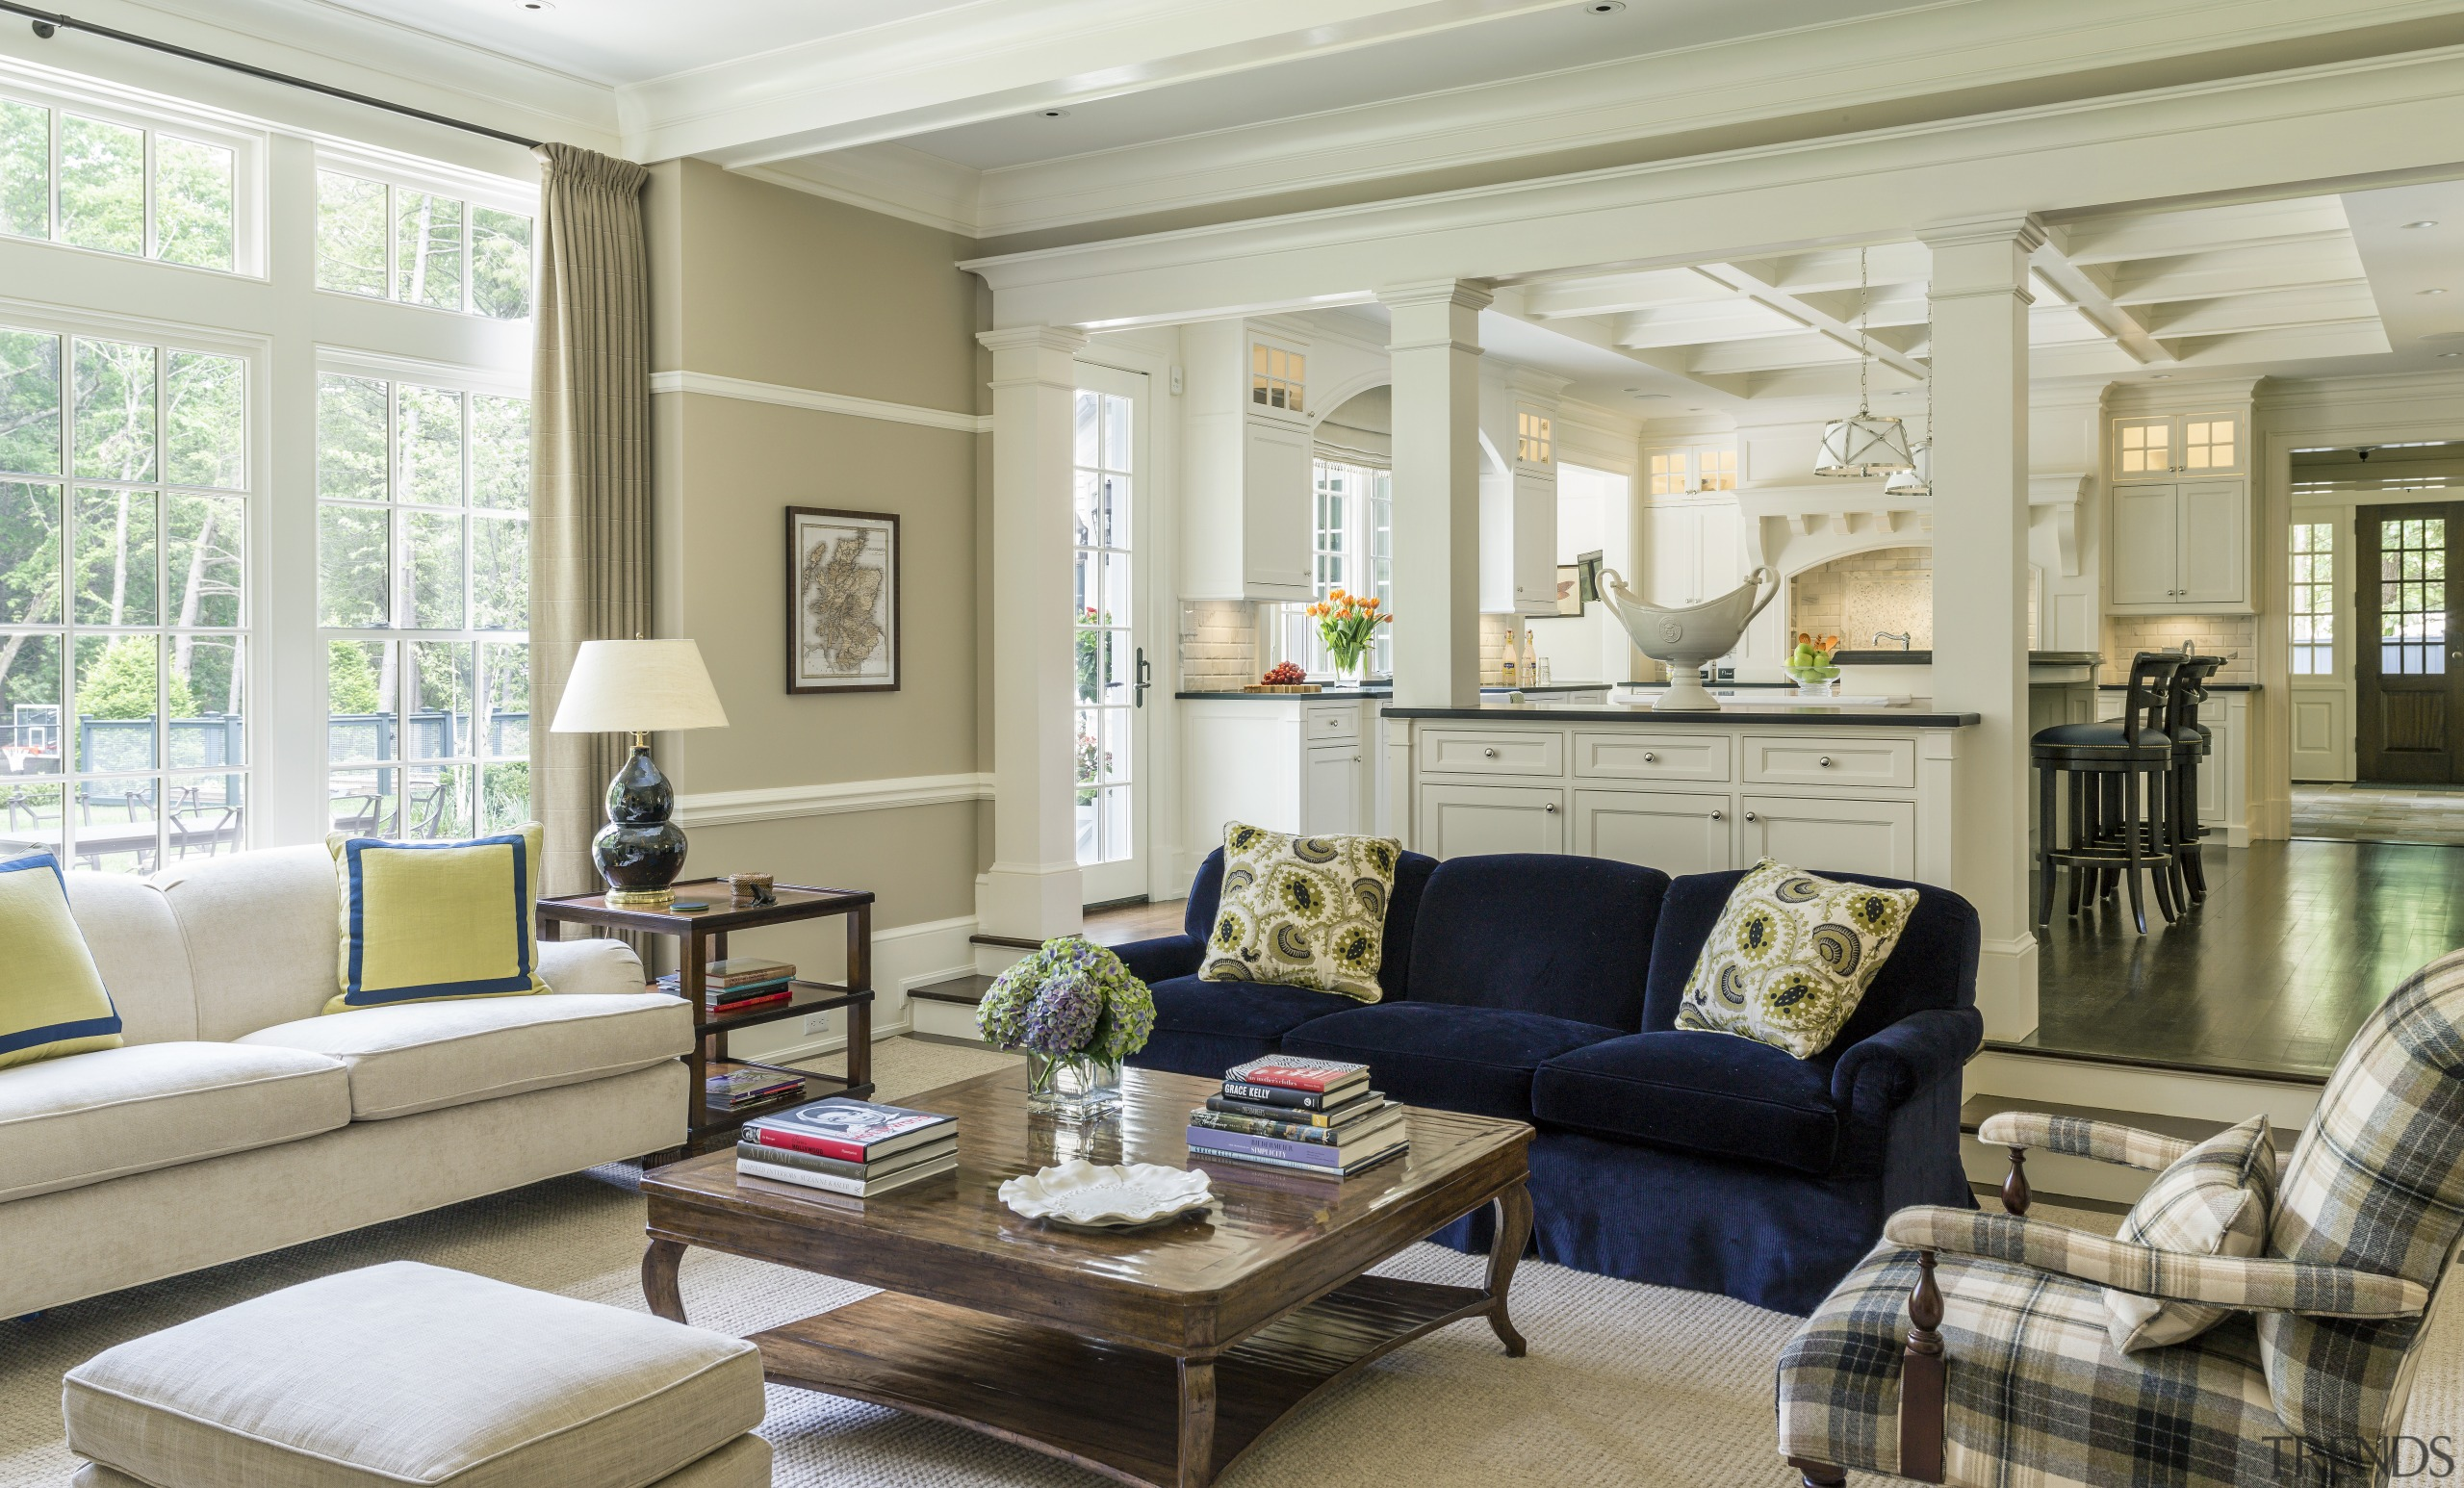 Traditional interior architecture is a key feature of ceiling, furniture, home, interior design, living room, room, window, gray